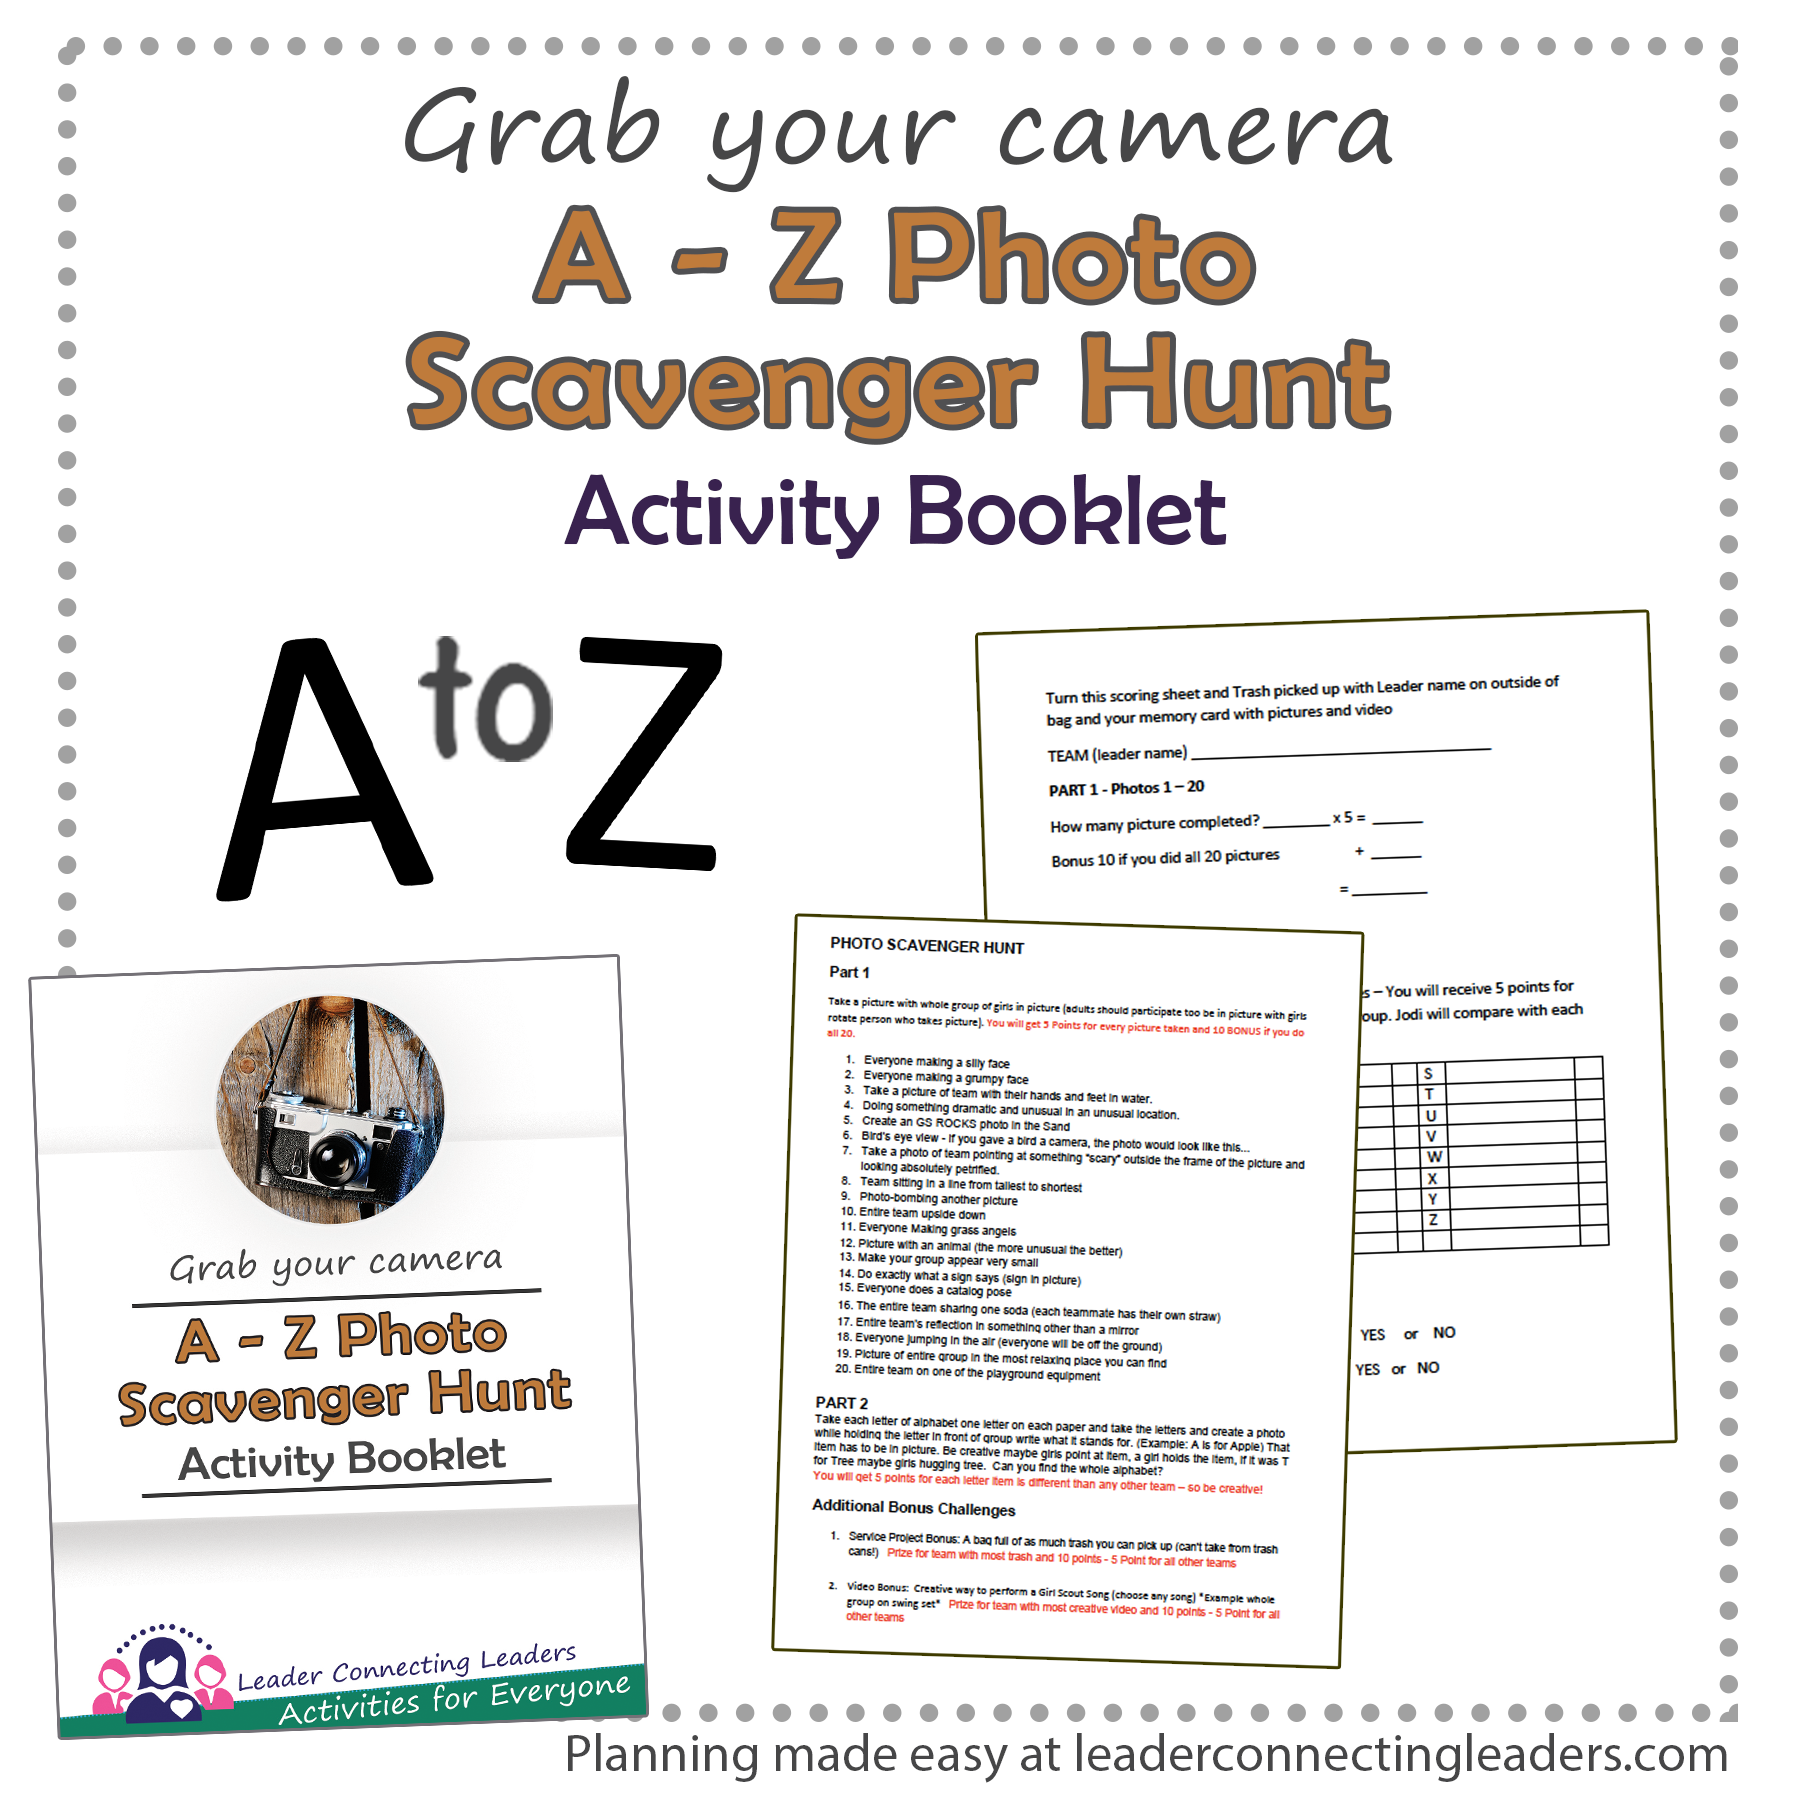 Photo Scavenger Hunt – Planned Day Event